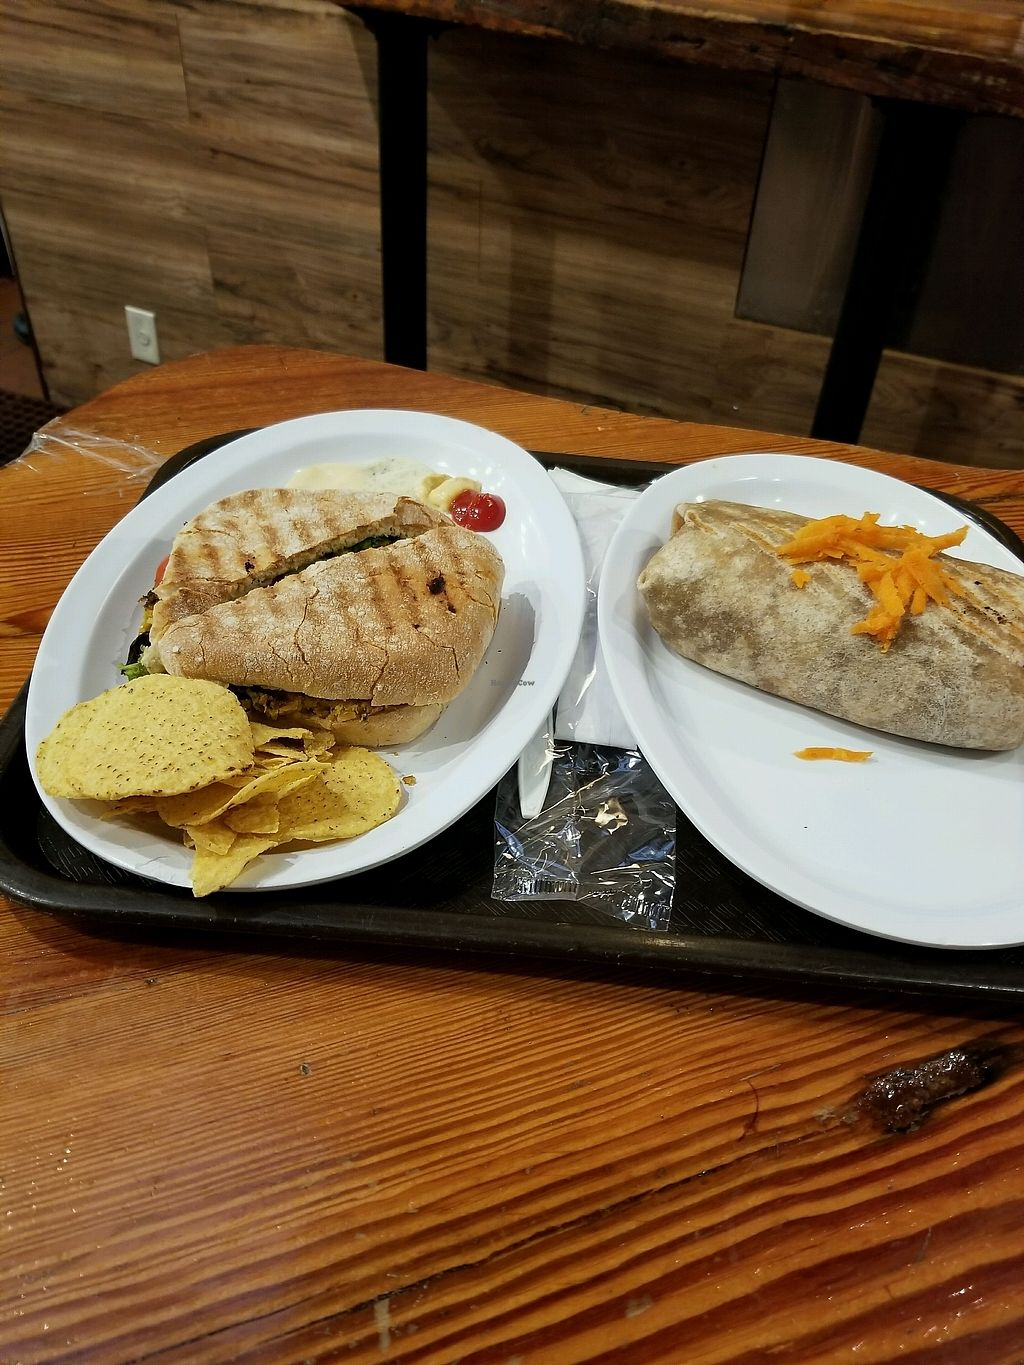 """Photo of Pick & Eat  by <a href=""""/members/profile/footprint_0"""">footprint_0</a> <br/>chickpea burger, and burrito <br/> October 8, 2017  - <a href='/contact/abuse/image/102035/312968'>Report</a>"""